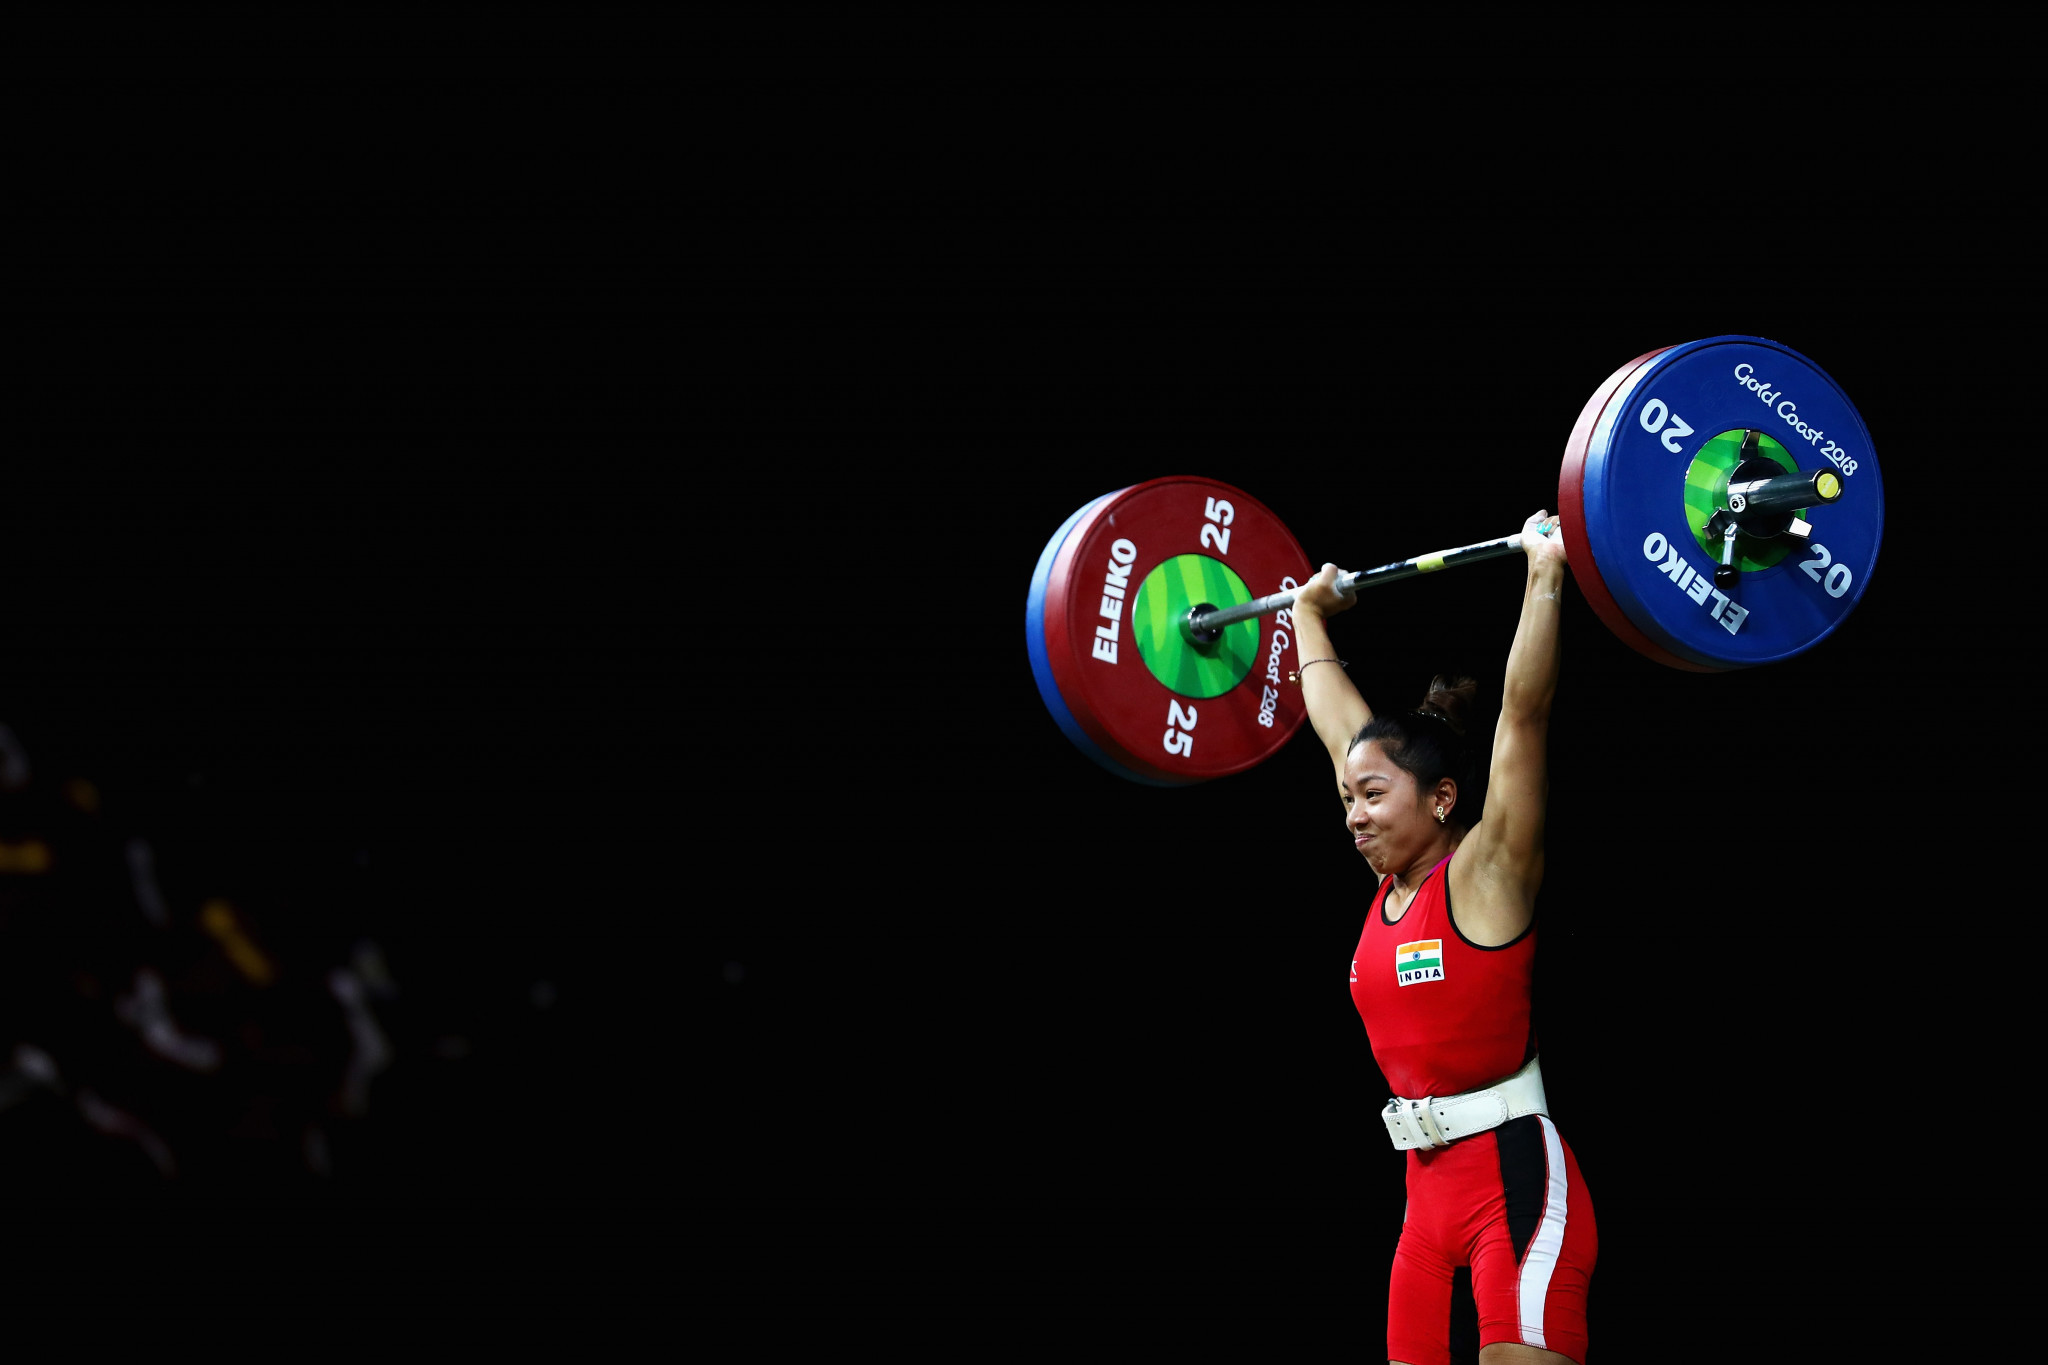 Mirabai Chanu will lead India's medal charge in Ningbo ©Getty Images